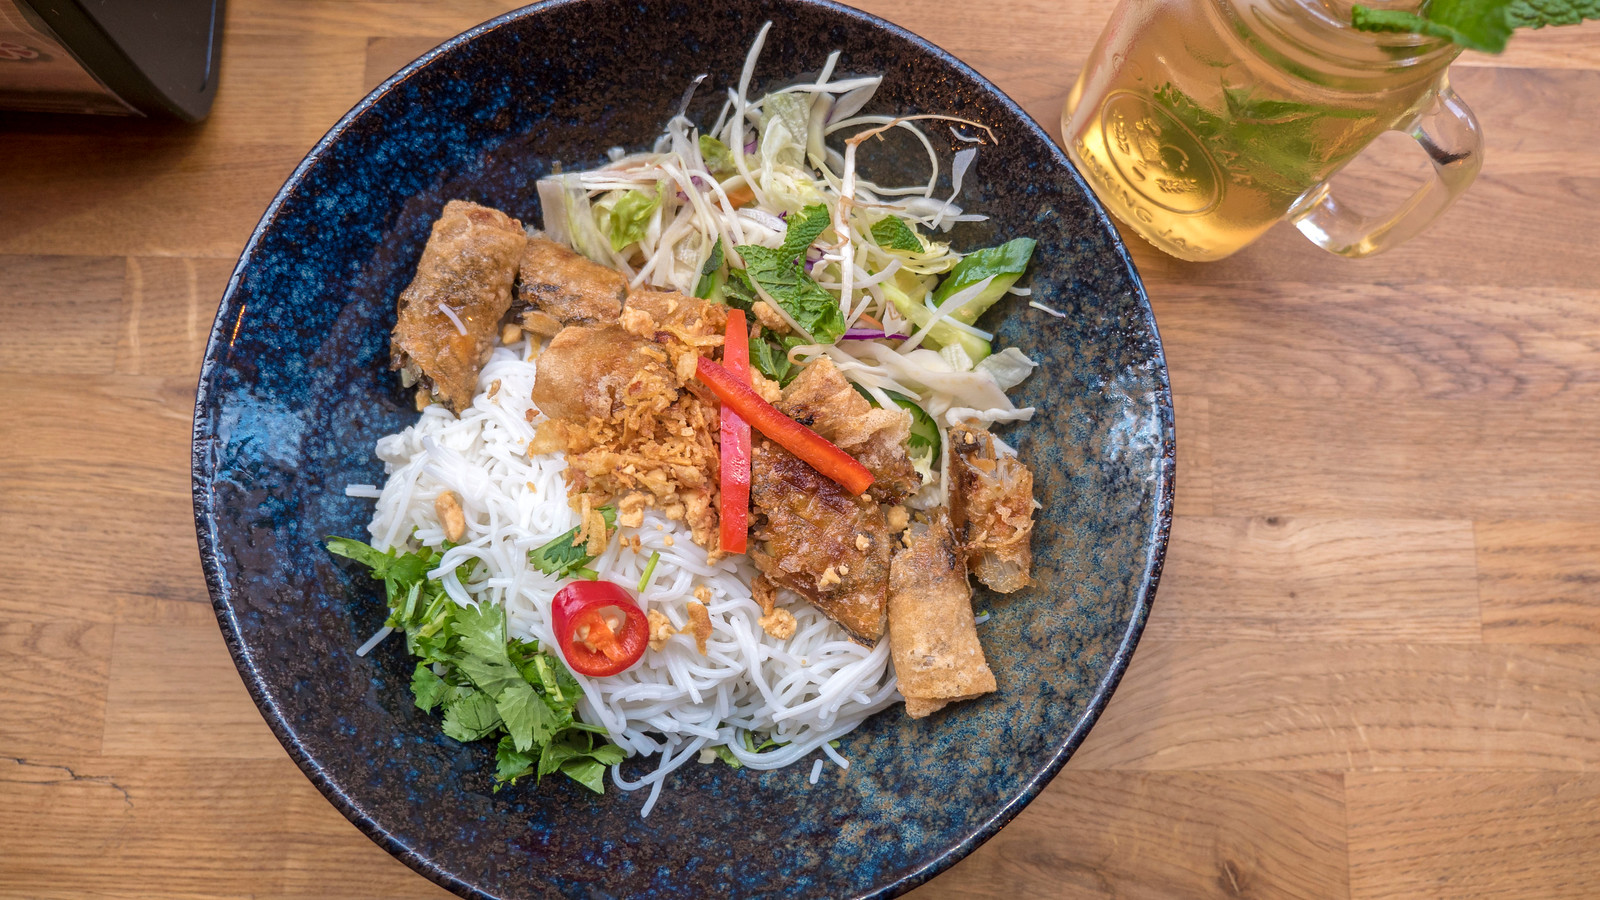 Chao Viet Kitchen - Vegan options in Copenhagen